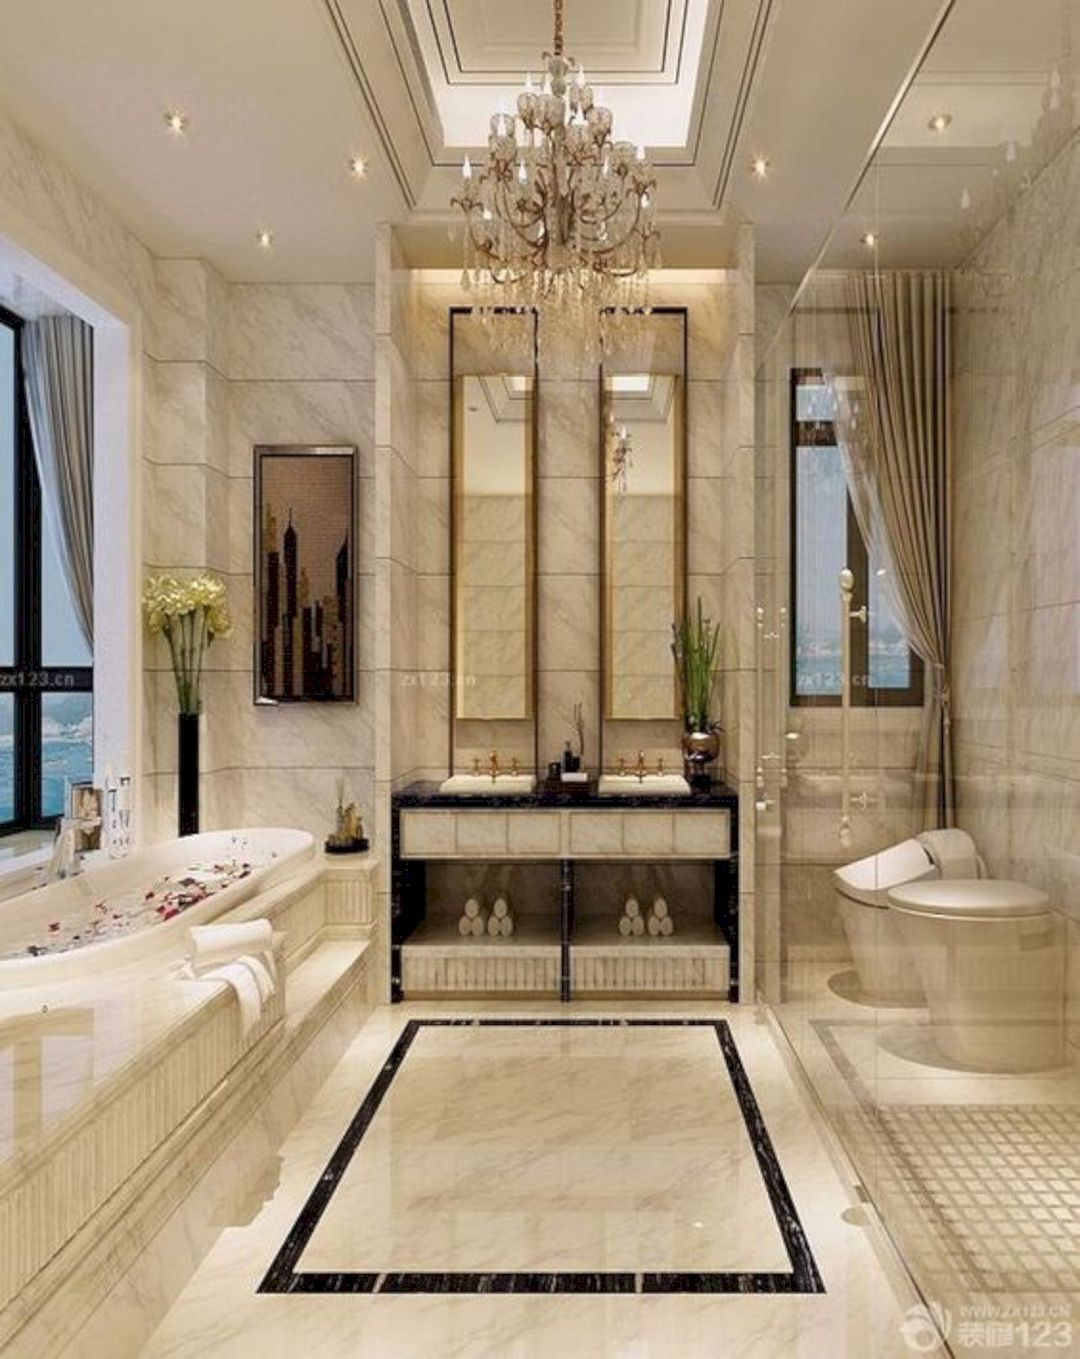 15 Elegant Bathroom Ideas to Steal | Bathroom design ...